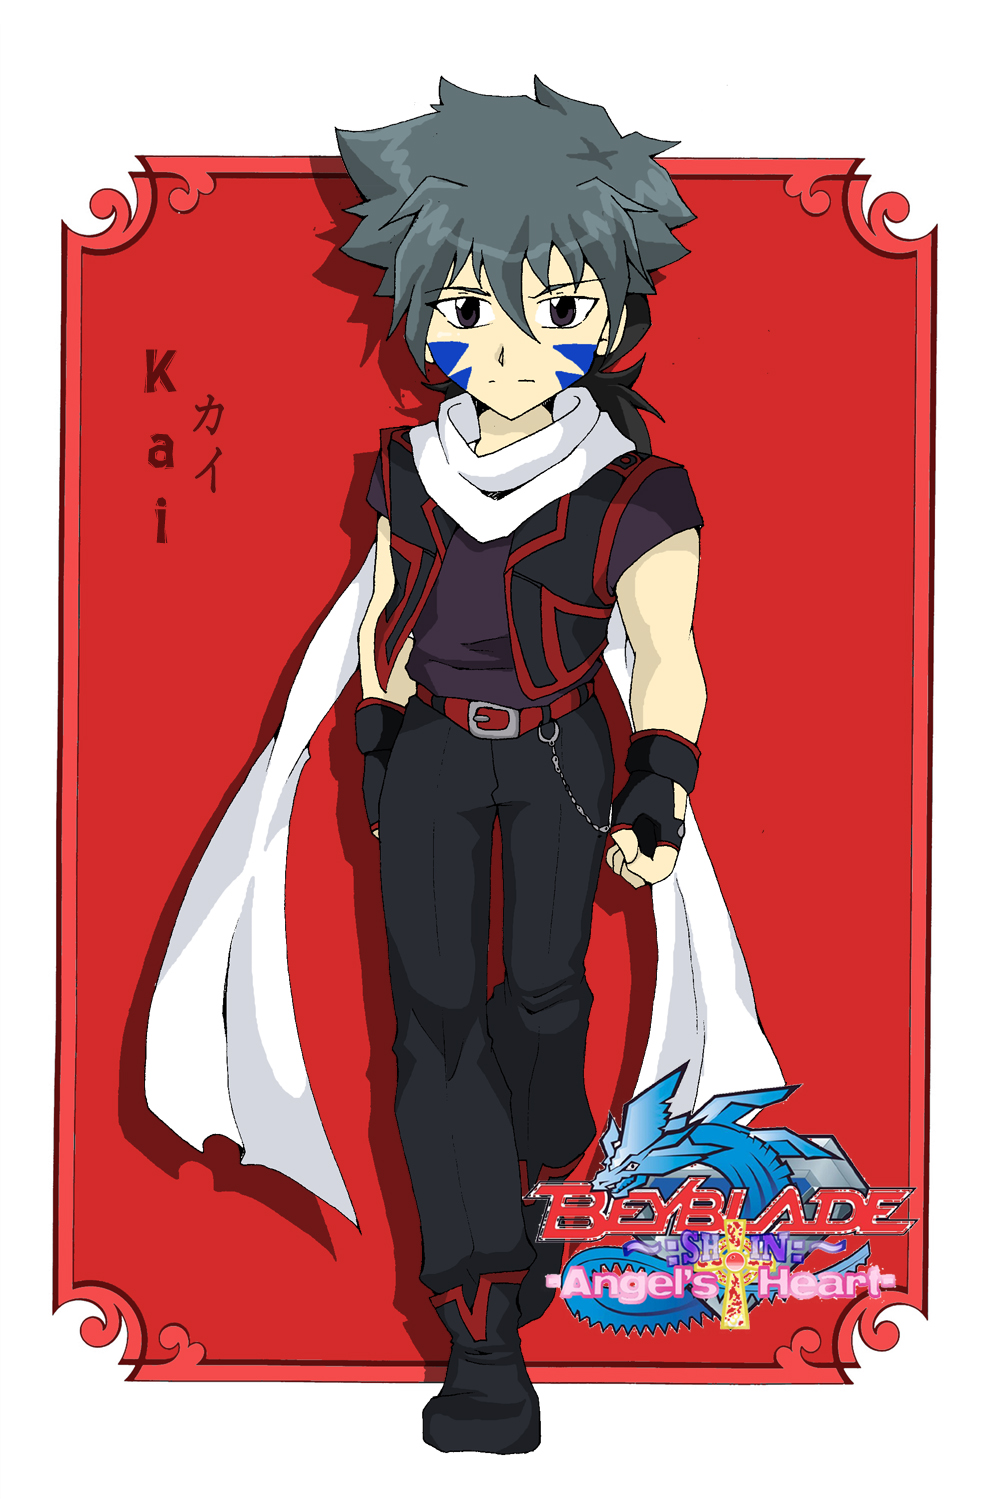 kai hiwatari beyblade angel s heart wiki fandom powered by wikia